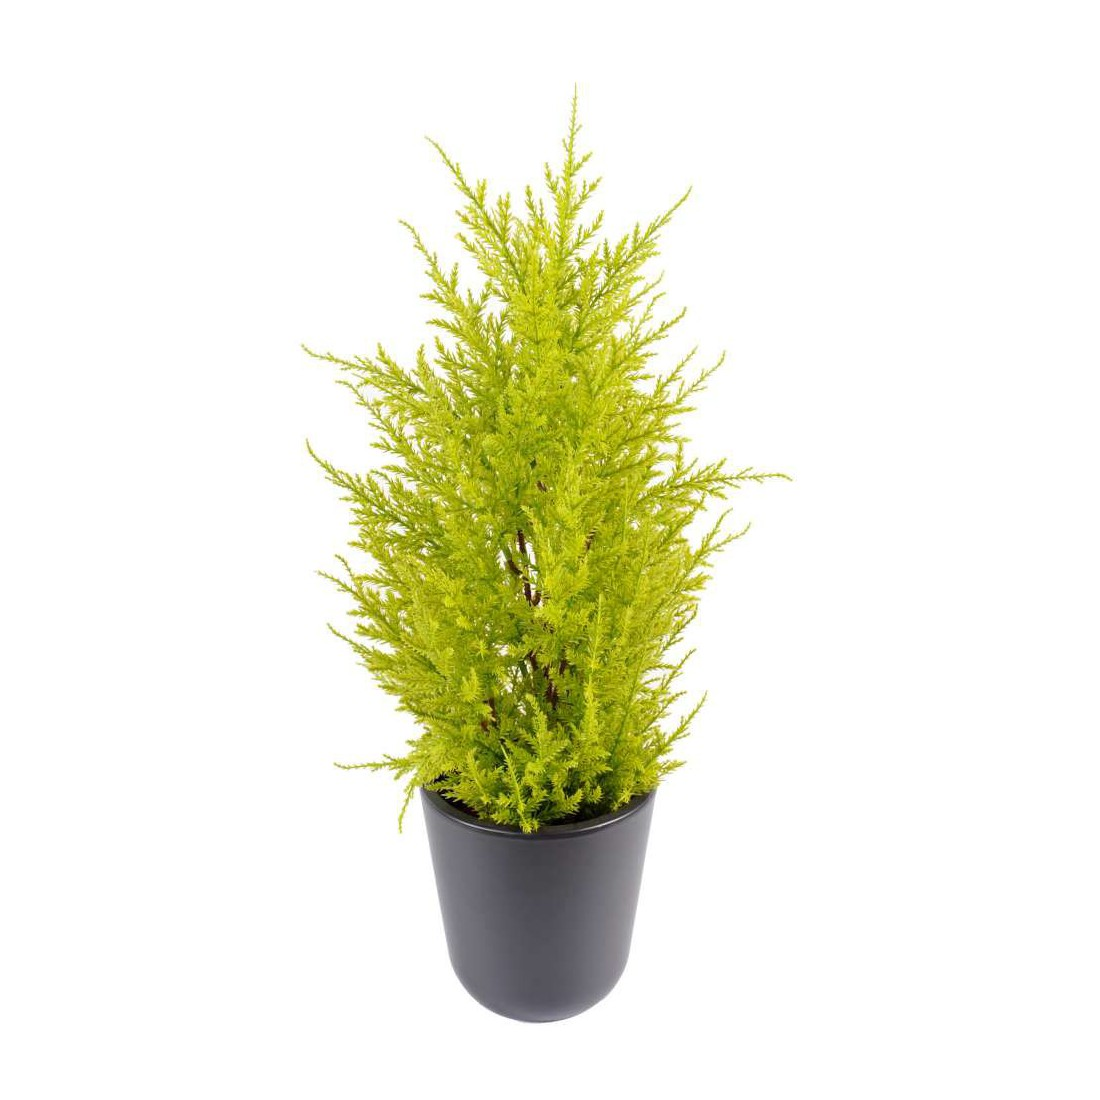 cypres artificiel mini jaune vert 55 cm juniperus cypr s artificiels reflets nature lyon. Black Bedroom Furniture Sets. Home Design Ideas